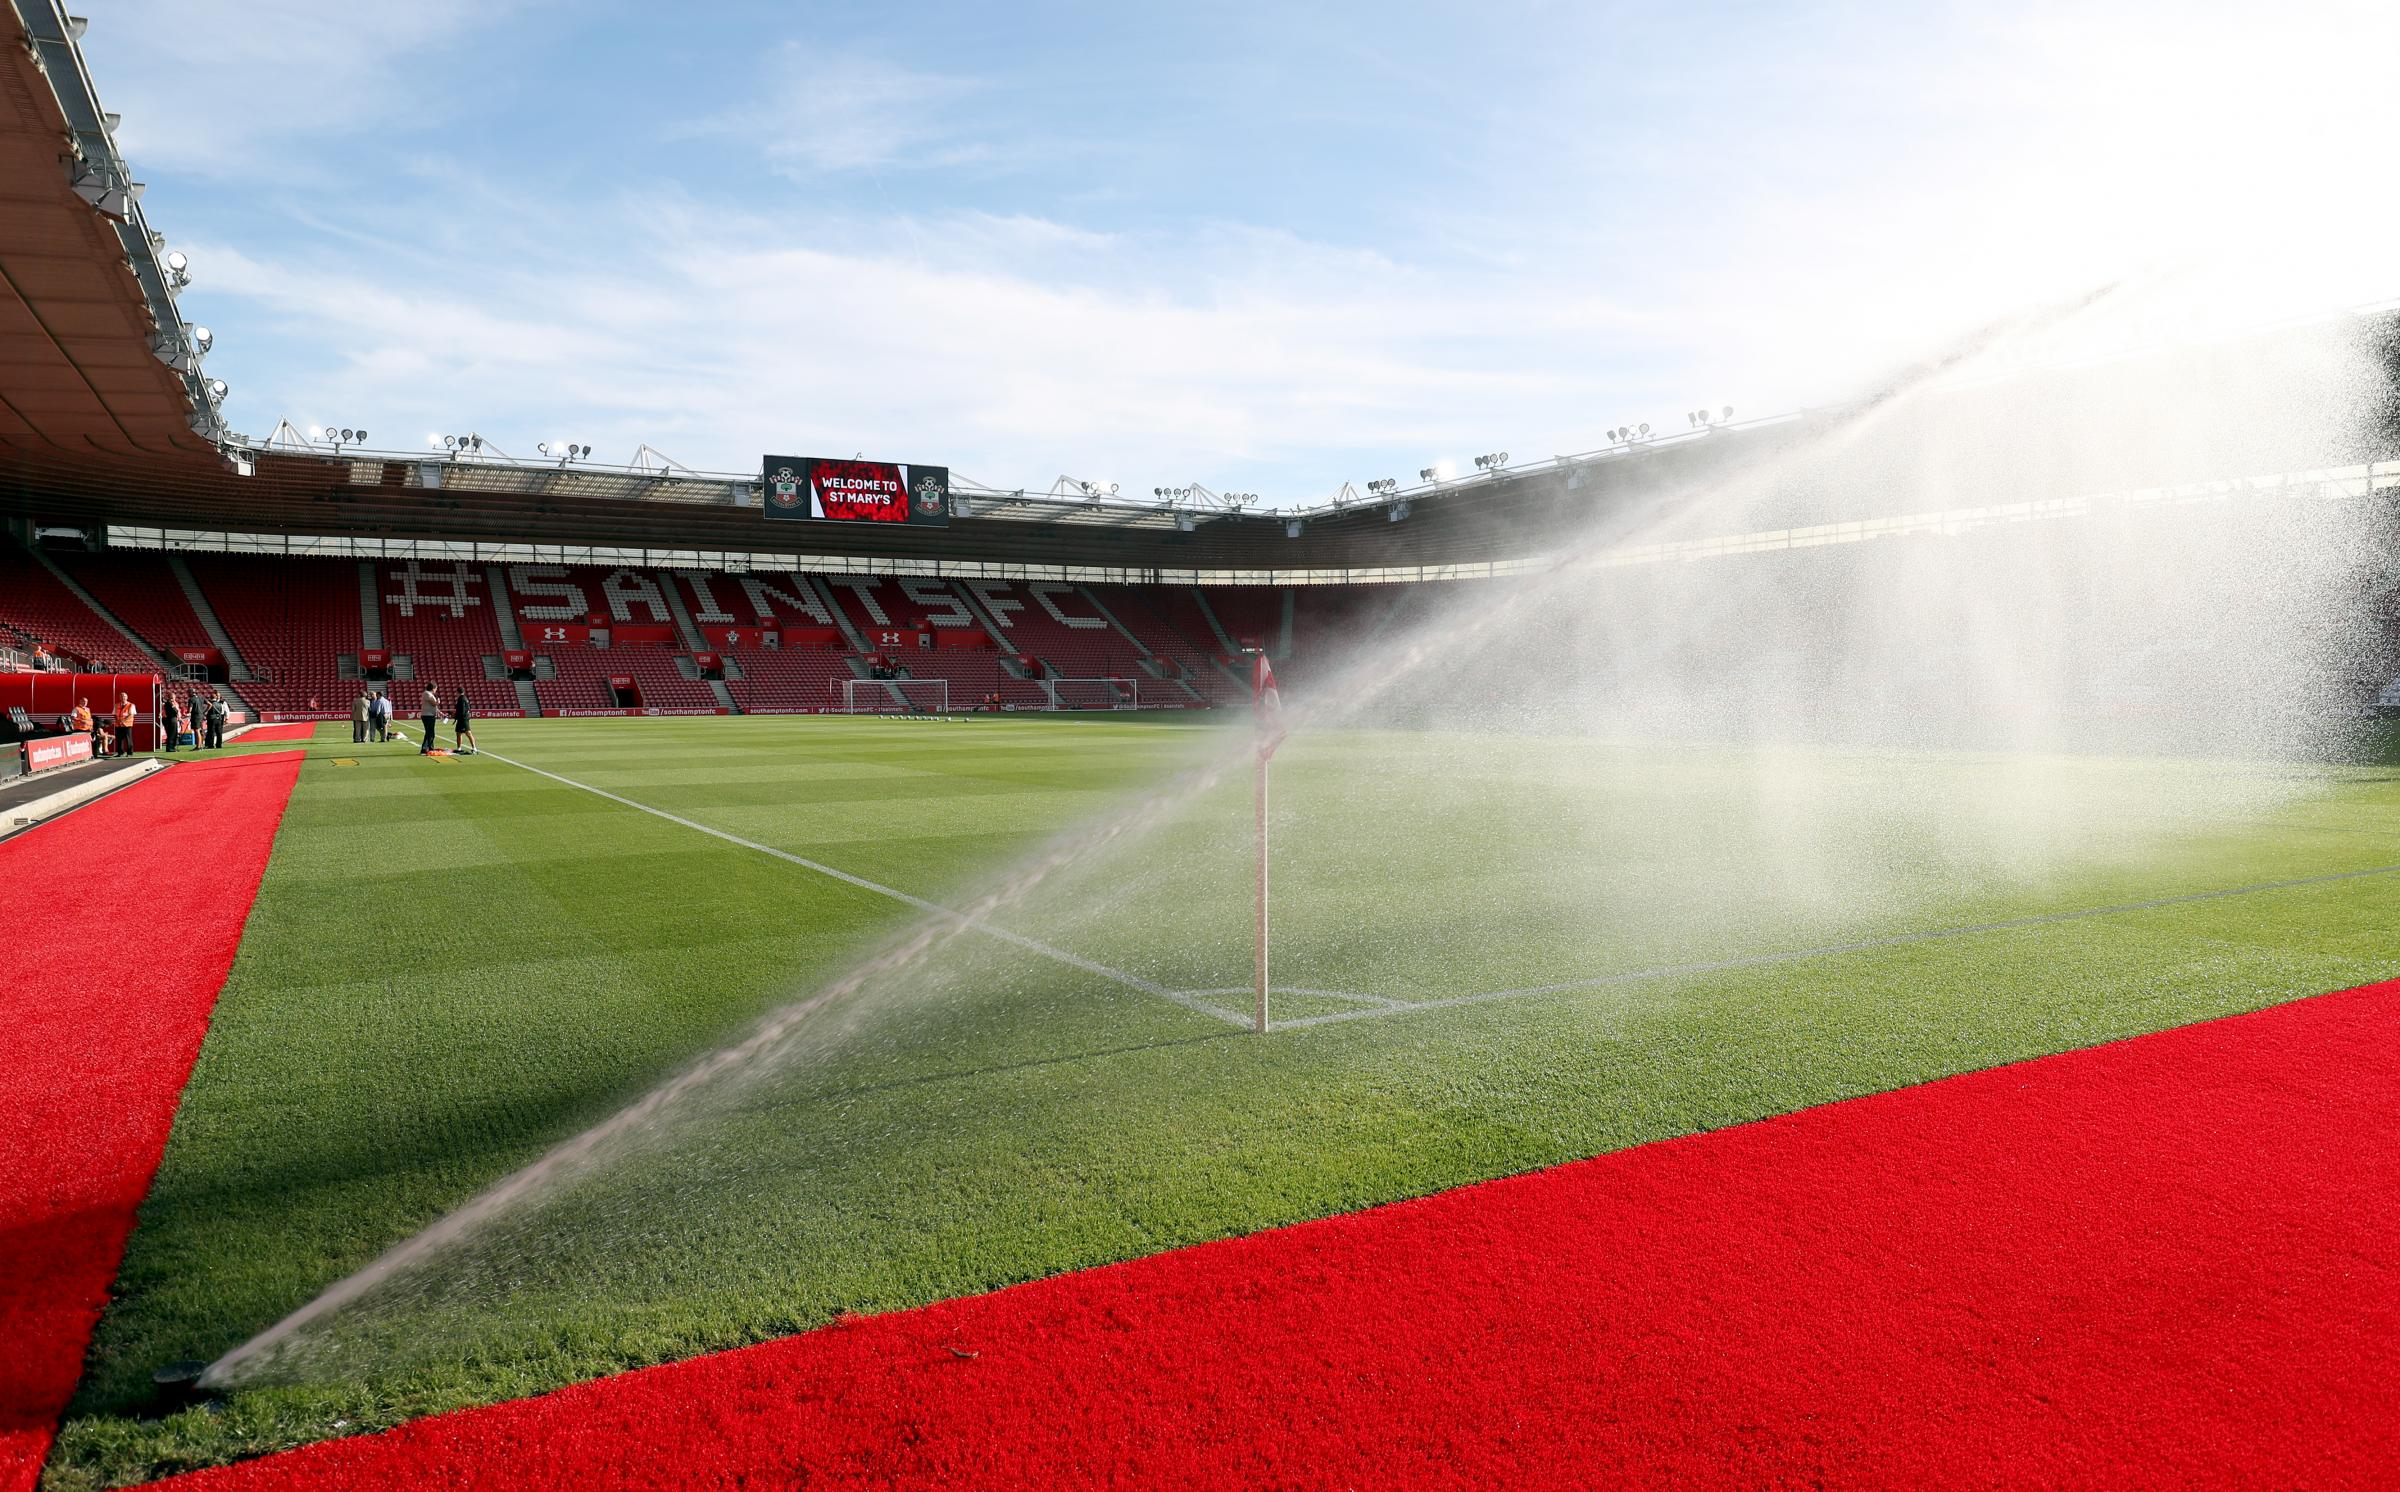 St Mary's Stadium has been chosen as a host venue for Women's Euro 2021 games